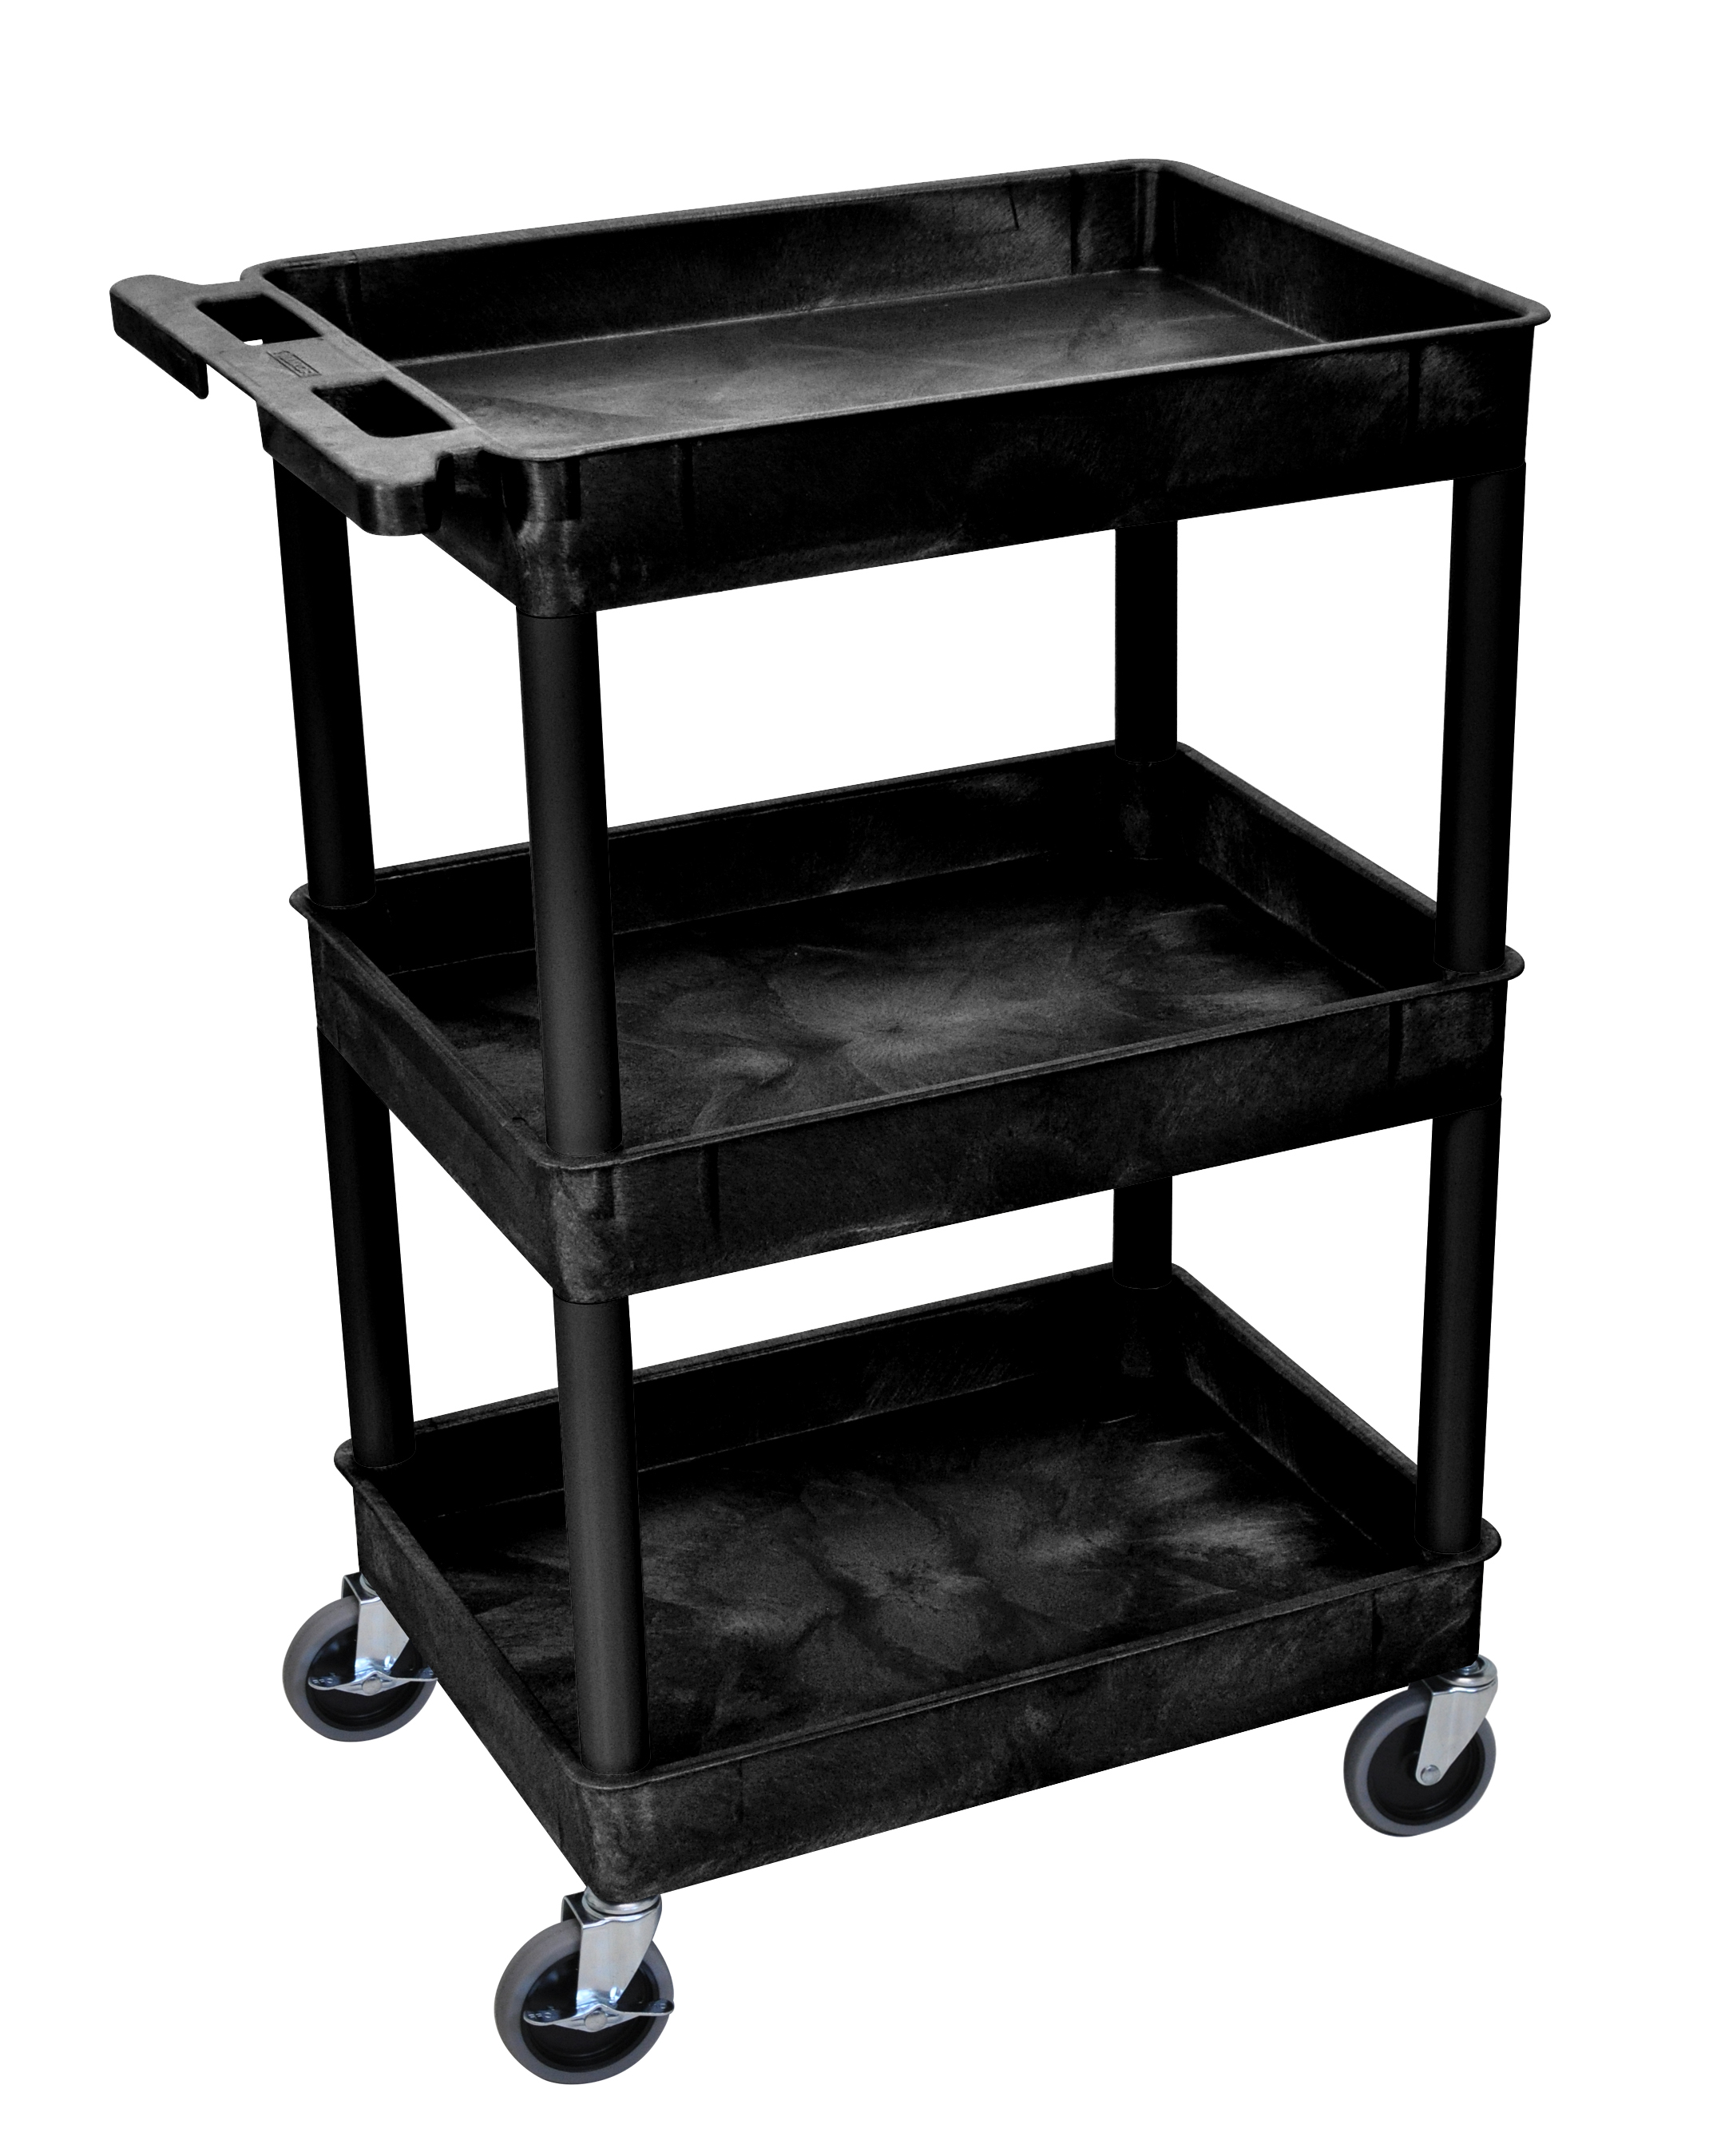 Plastic Utility Cart with 3 tub shelves